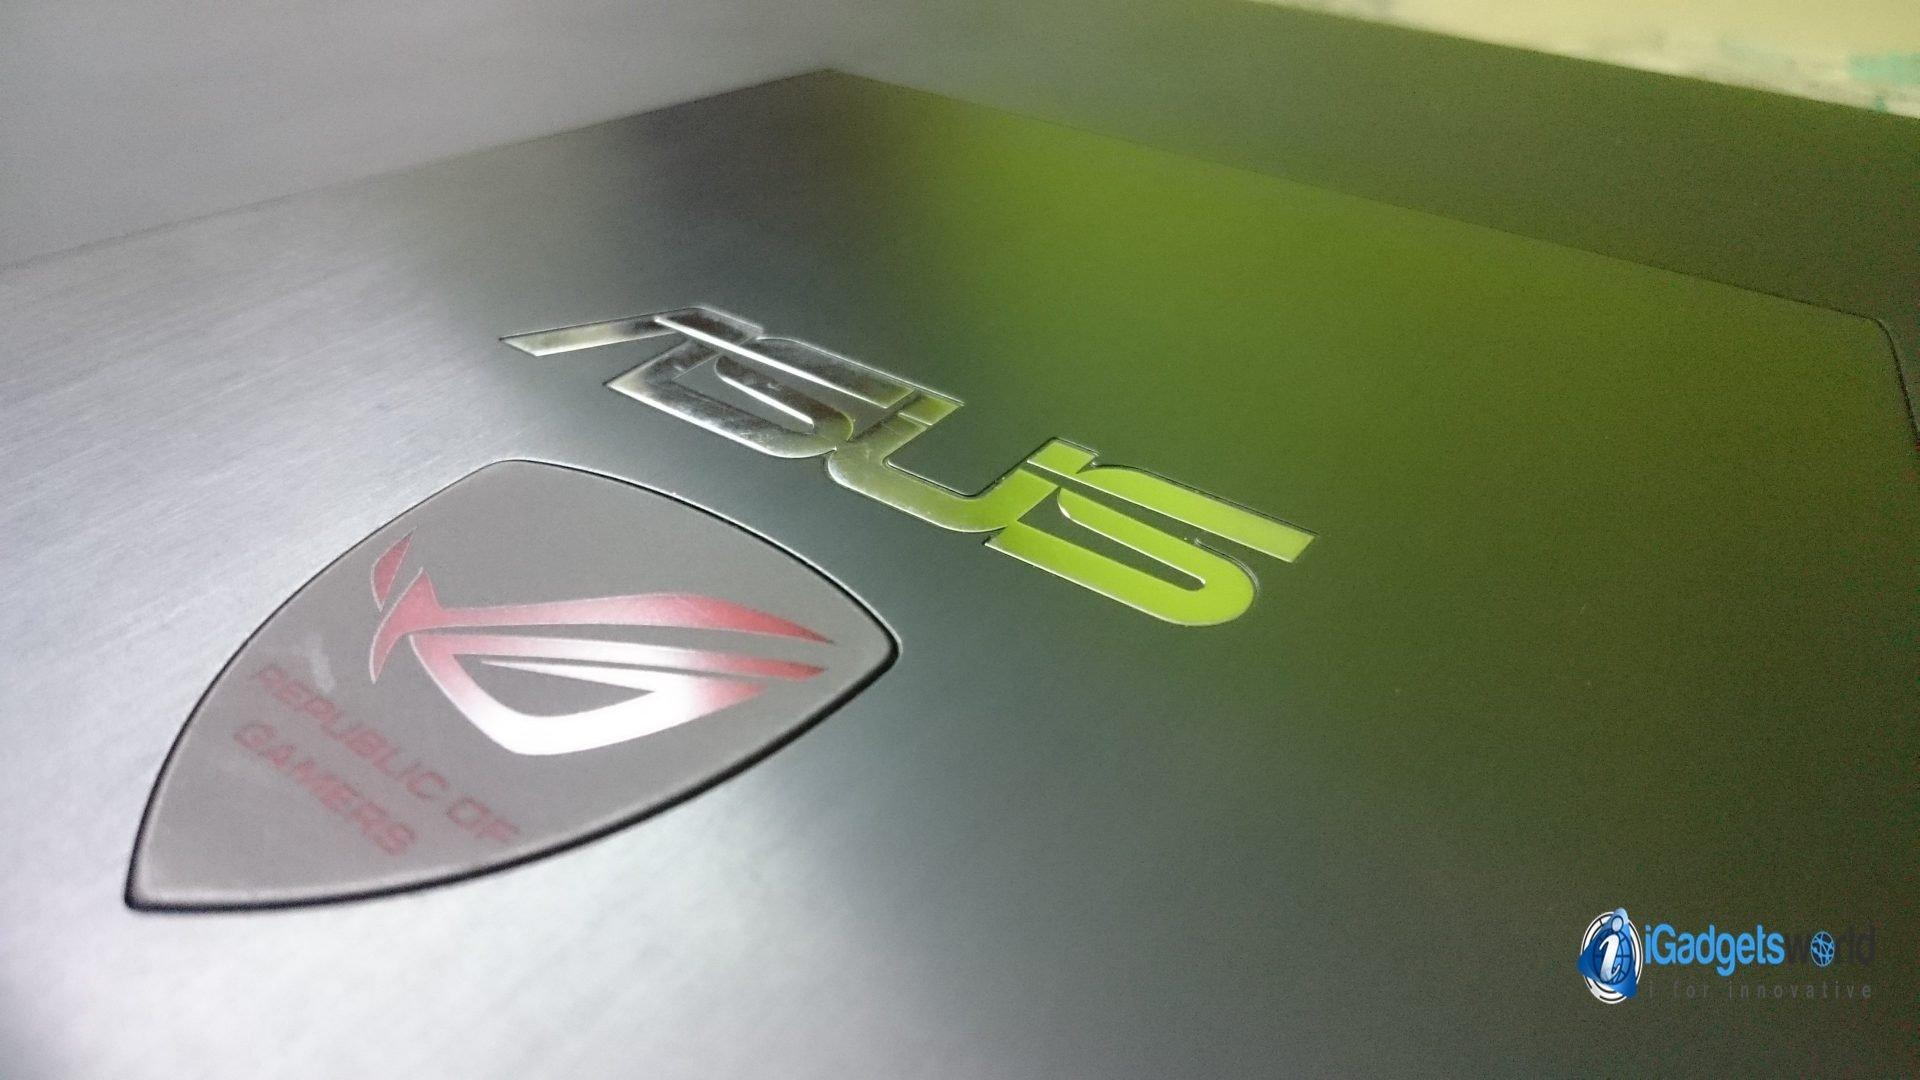 Asus ROG G751J Review: A Slightly Overpriced Ultra High-End Gaming Laptop - 12